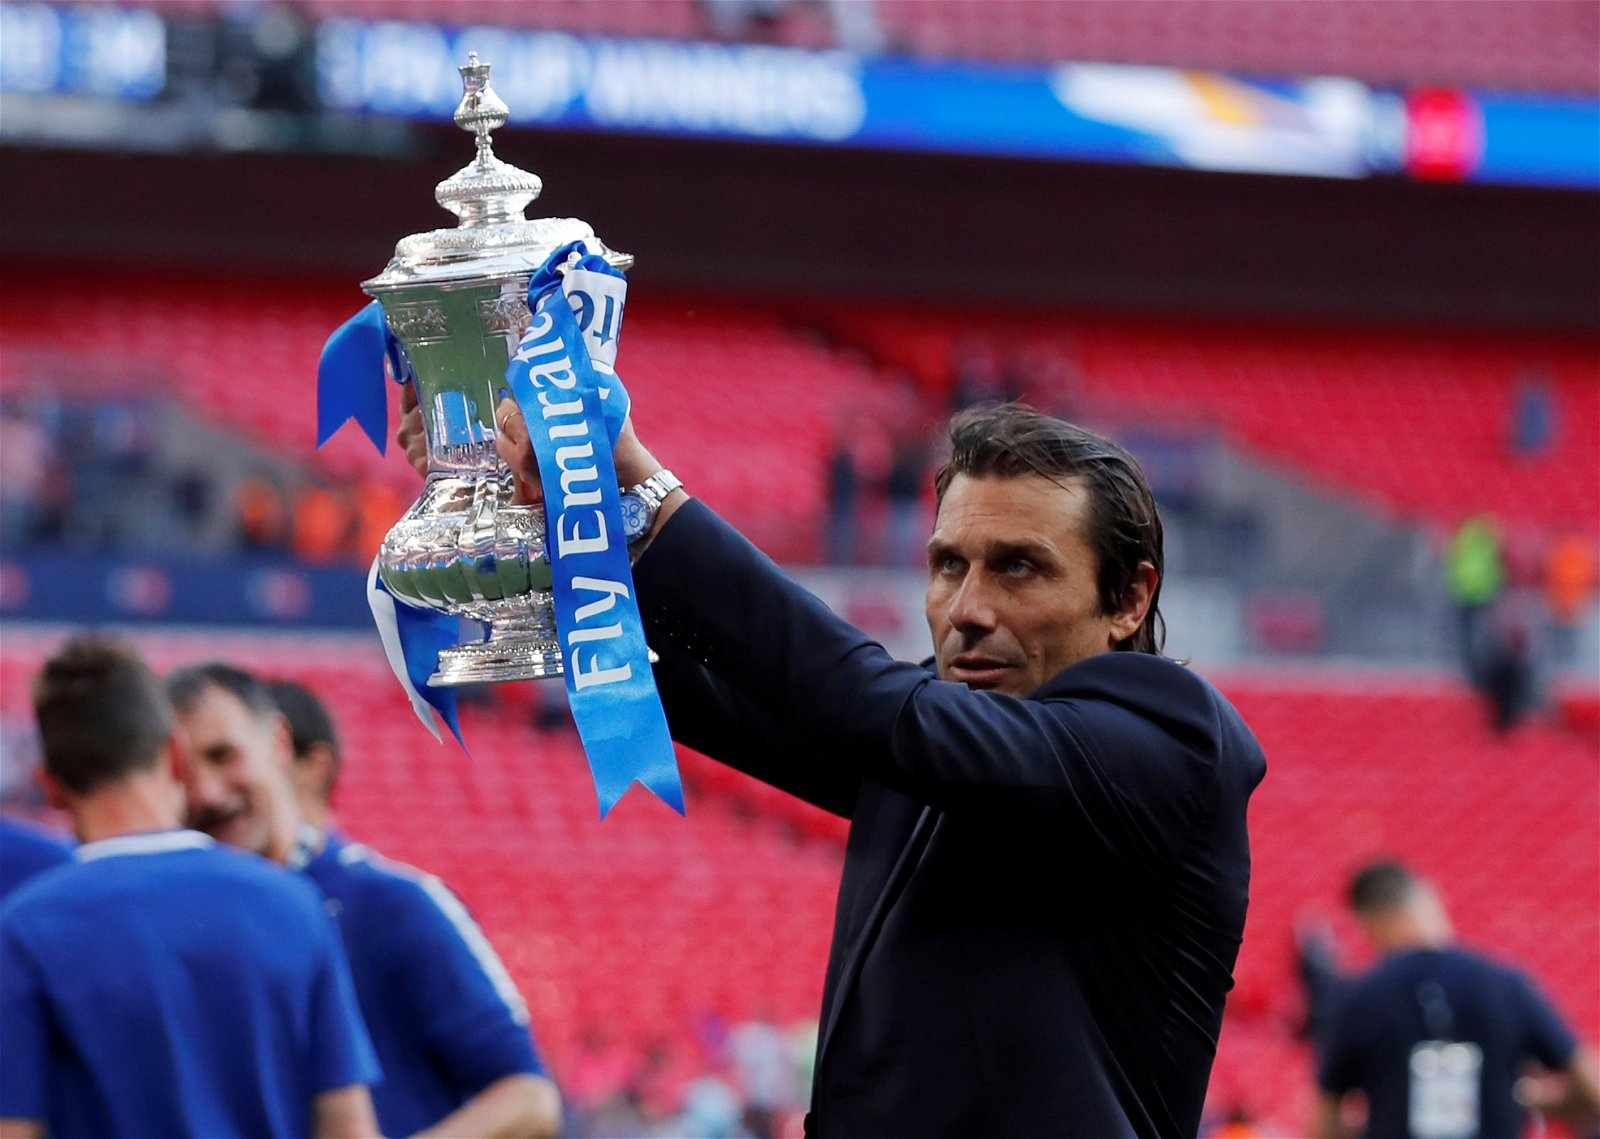 Chelsea manager Antonio Conte lifts the FA Cup trophy at Wembley